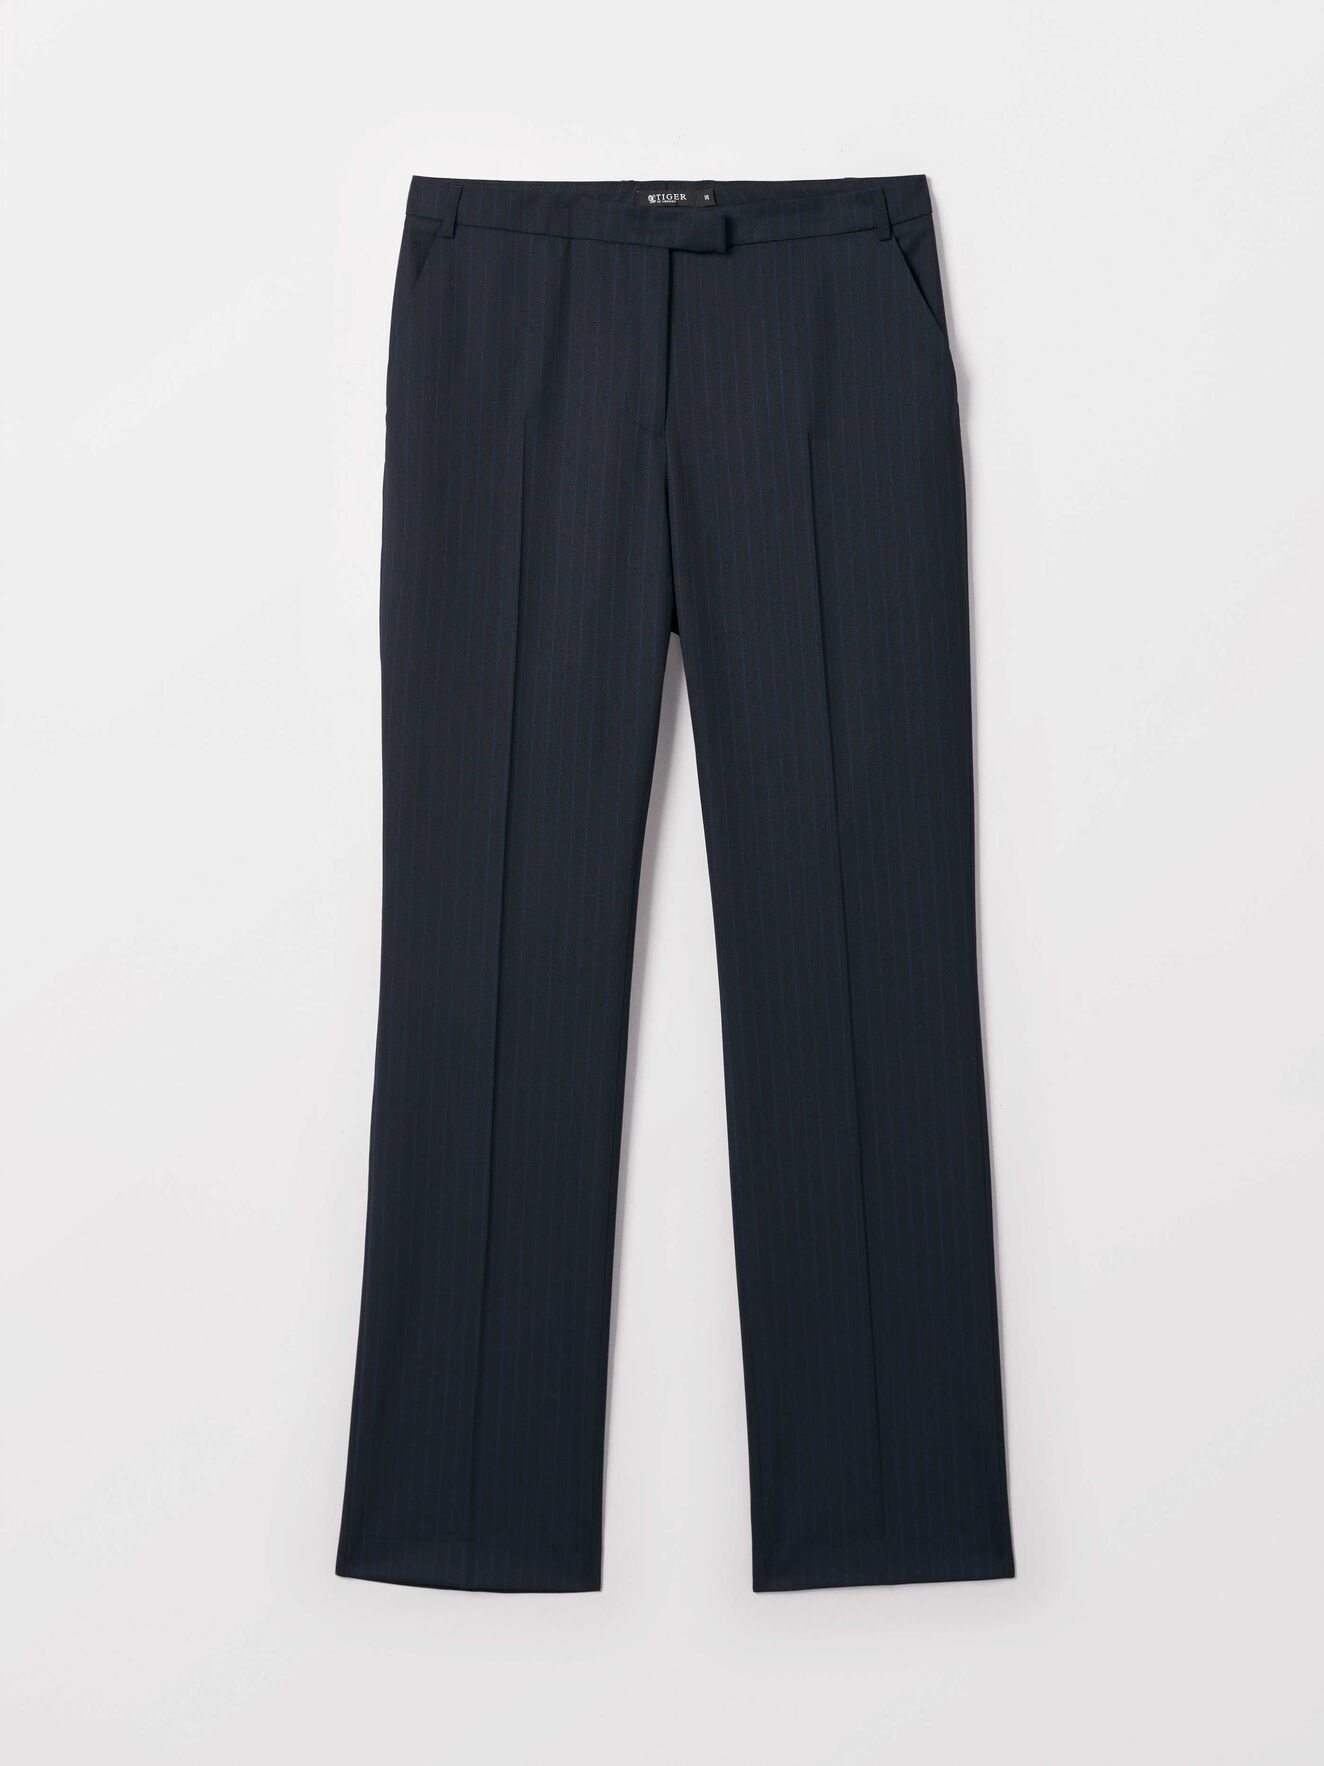 Yulia 4 Trousers in Dark Sea from Tiger of Sweden